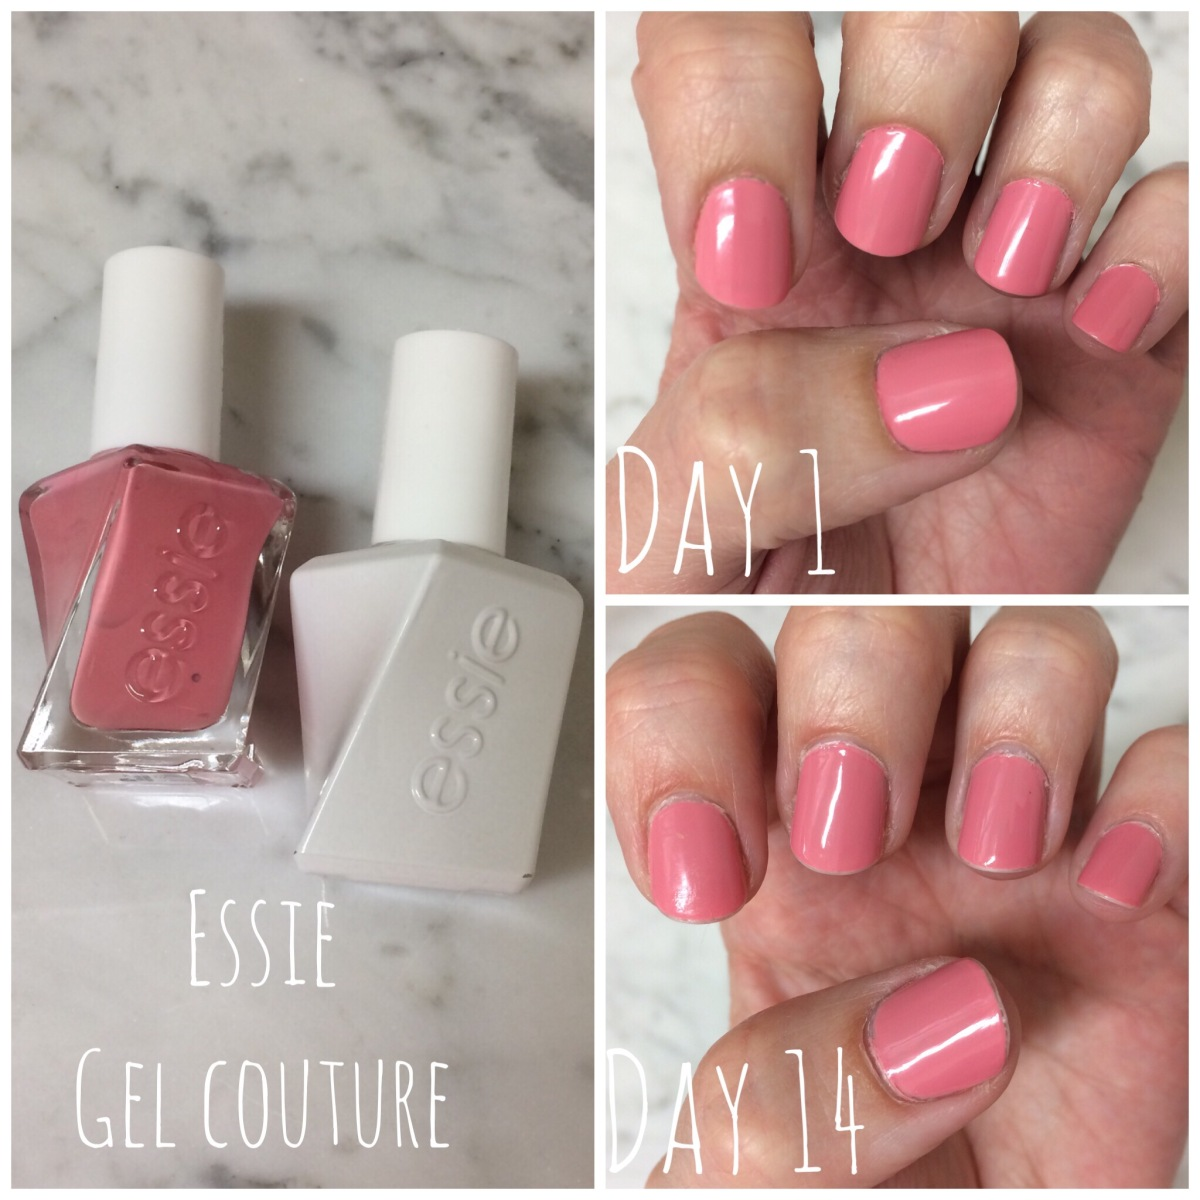 Gel Nails at Home | Essie Gel Couture – 14 Day WearTest